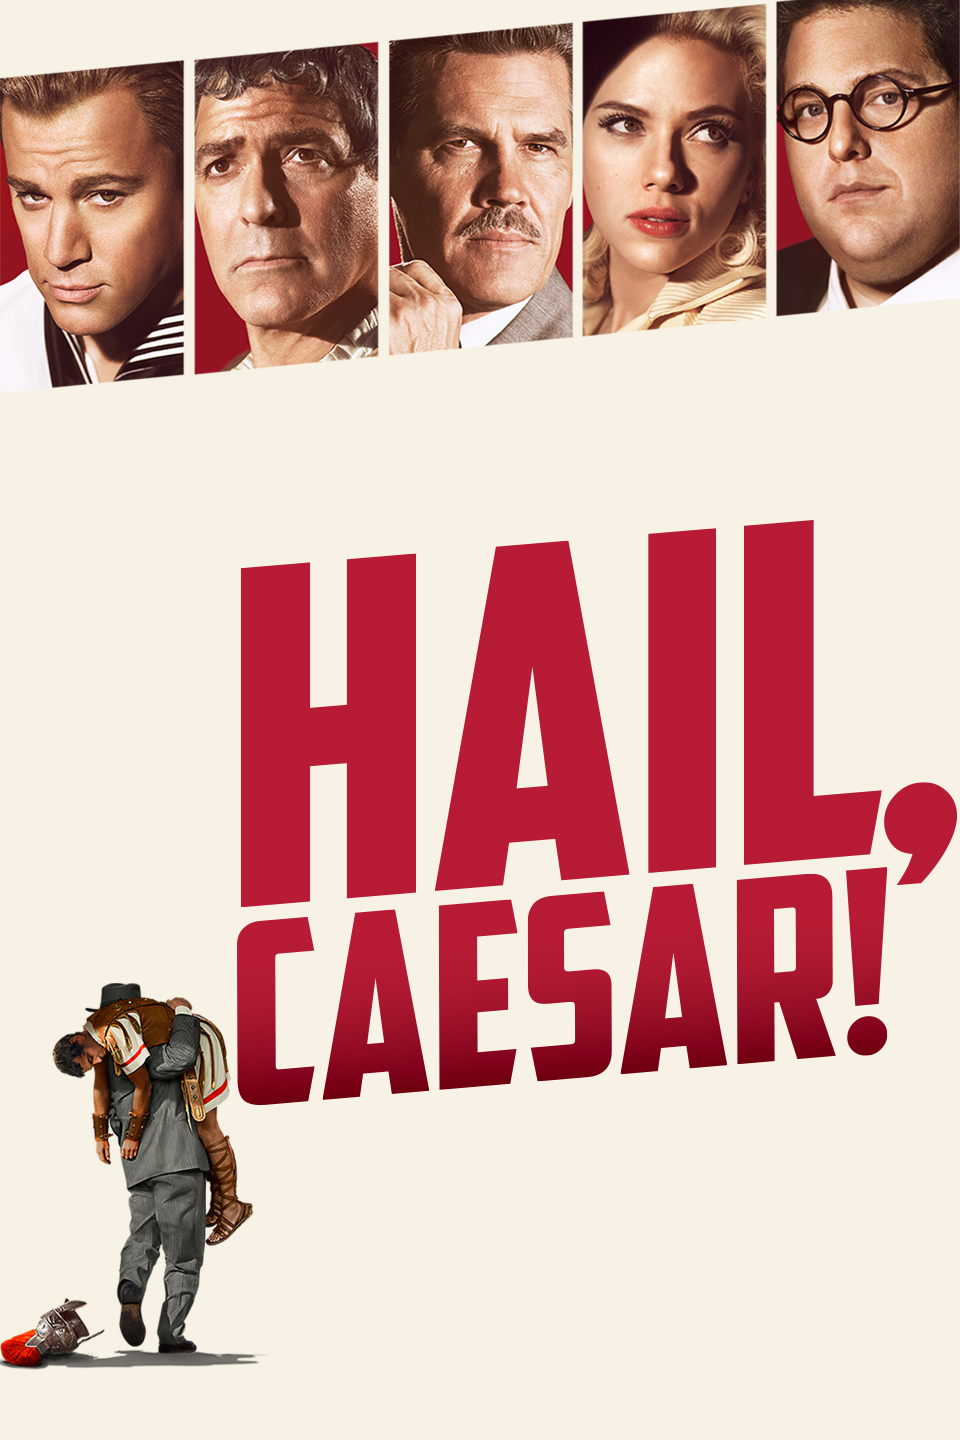 Hail-Cesar960x1440-Portrate